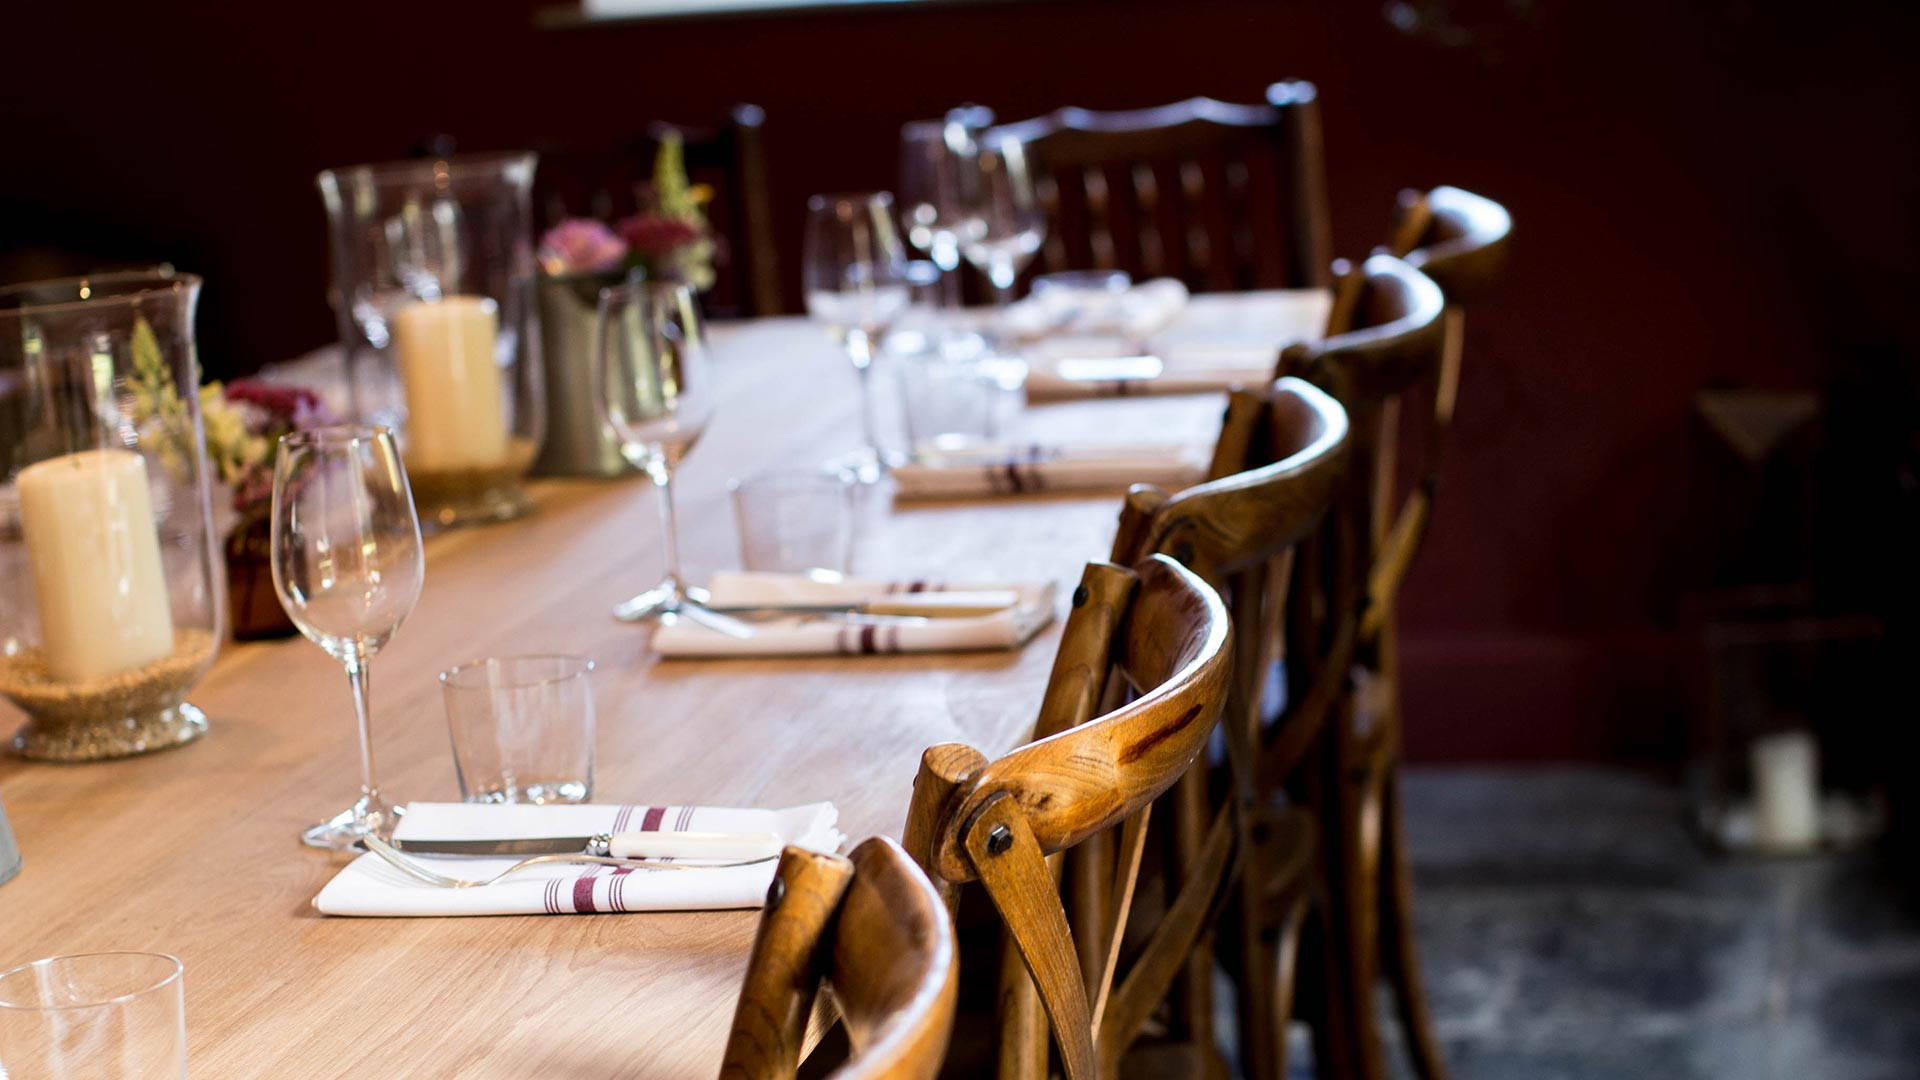 Coombeshead Farm started as a passion project and is now a restaurant retreat. Photography by Claire Menary